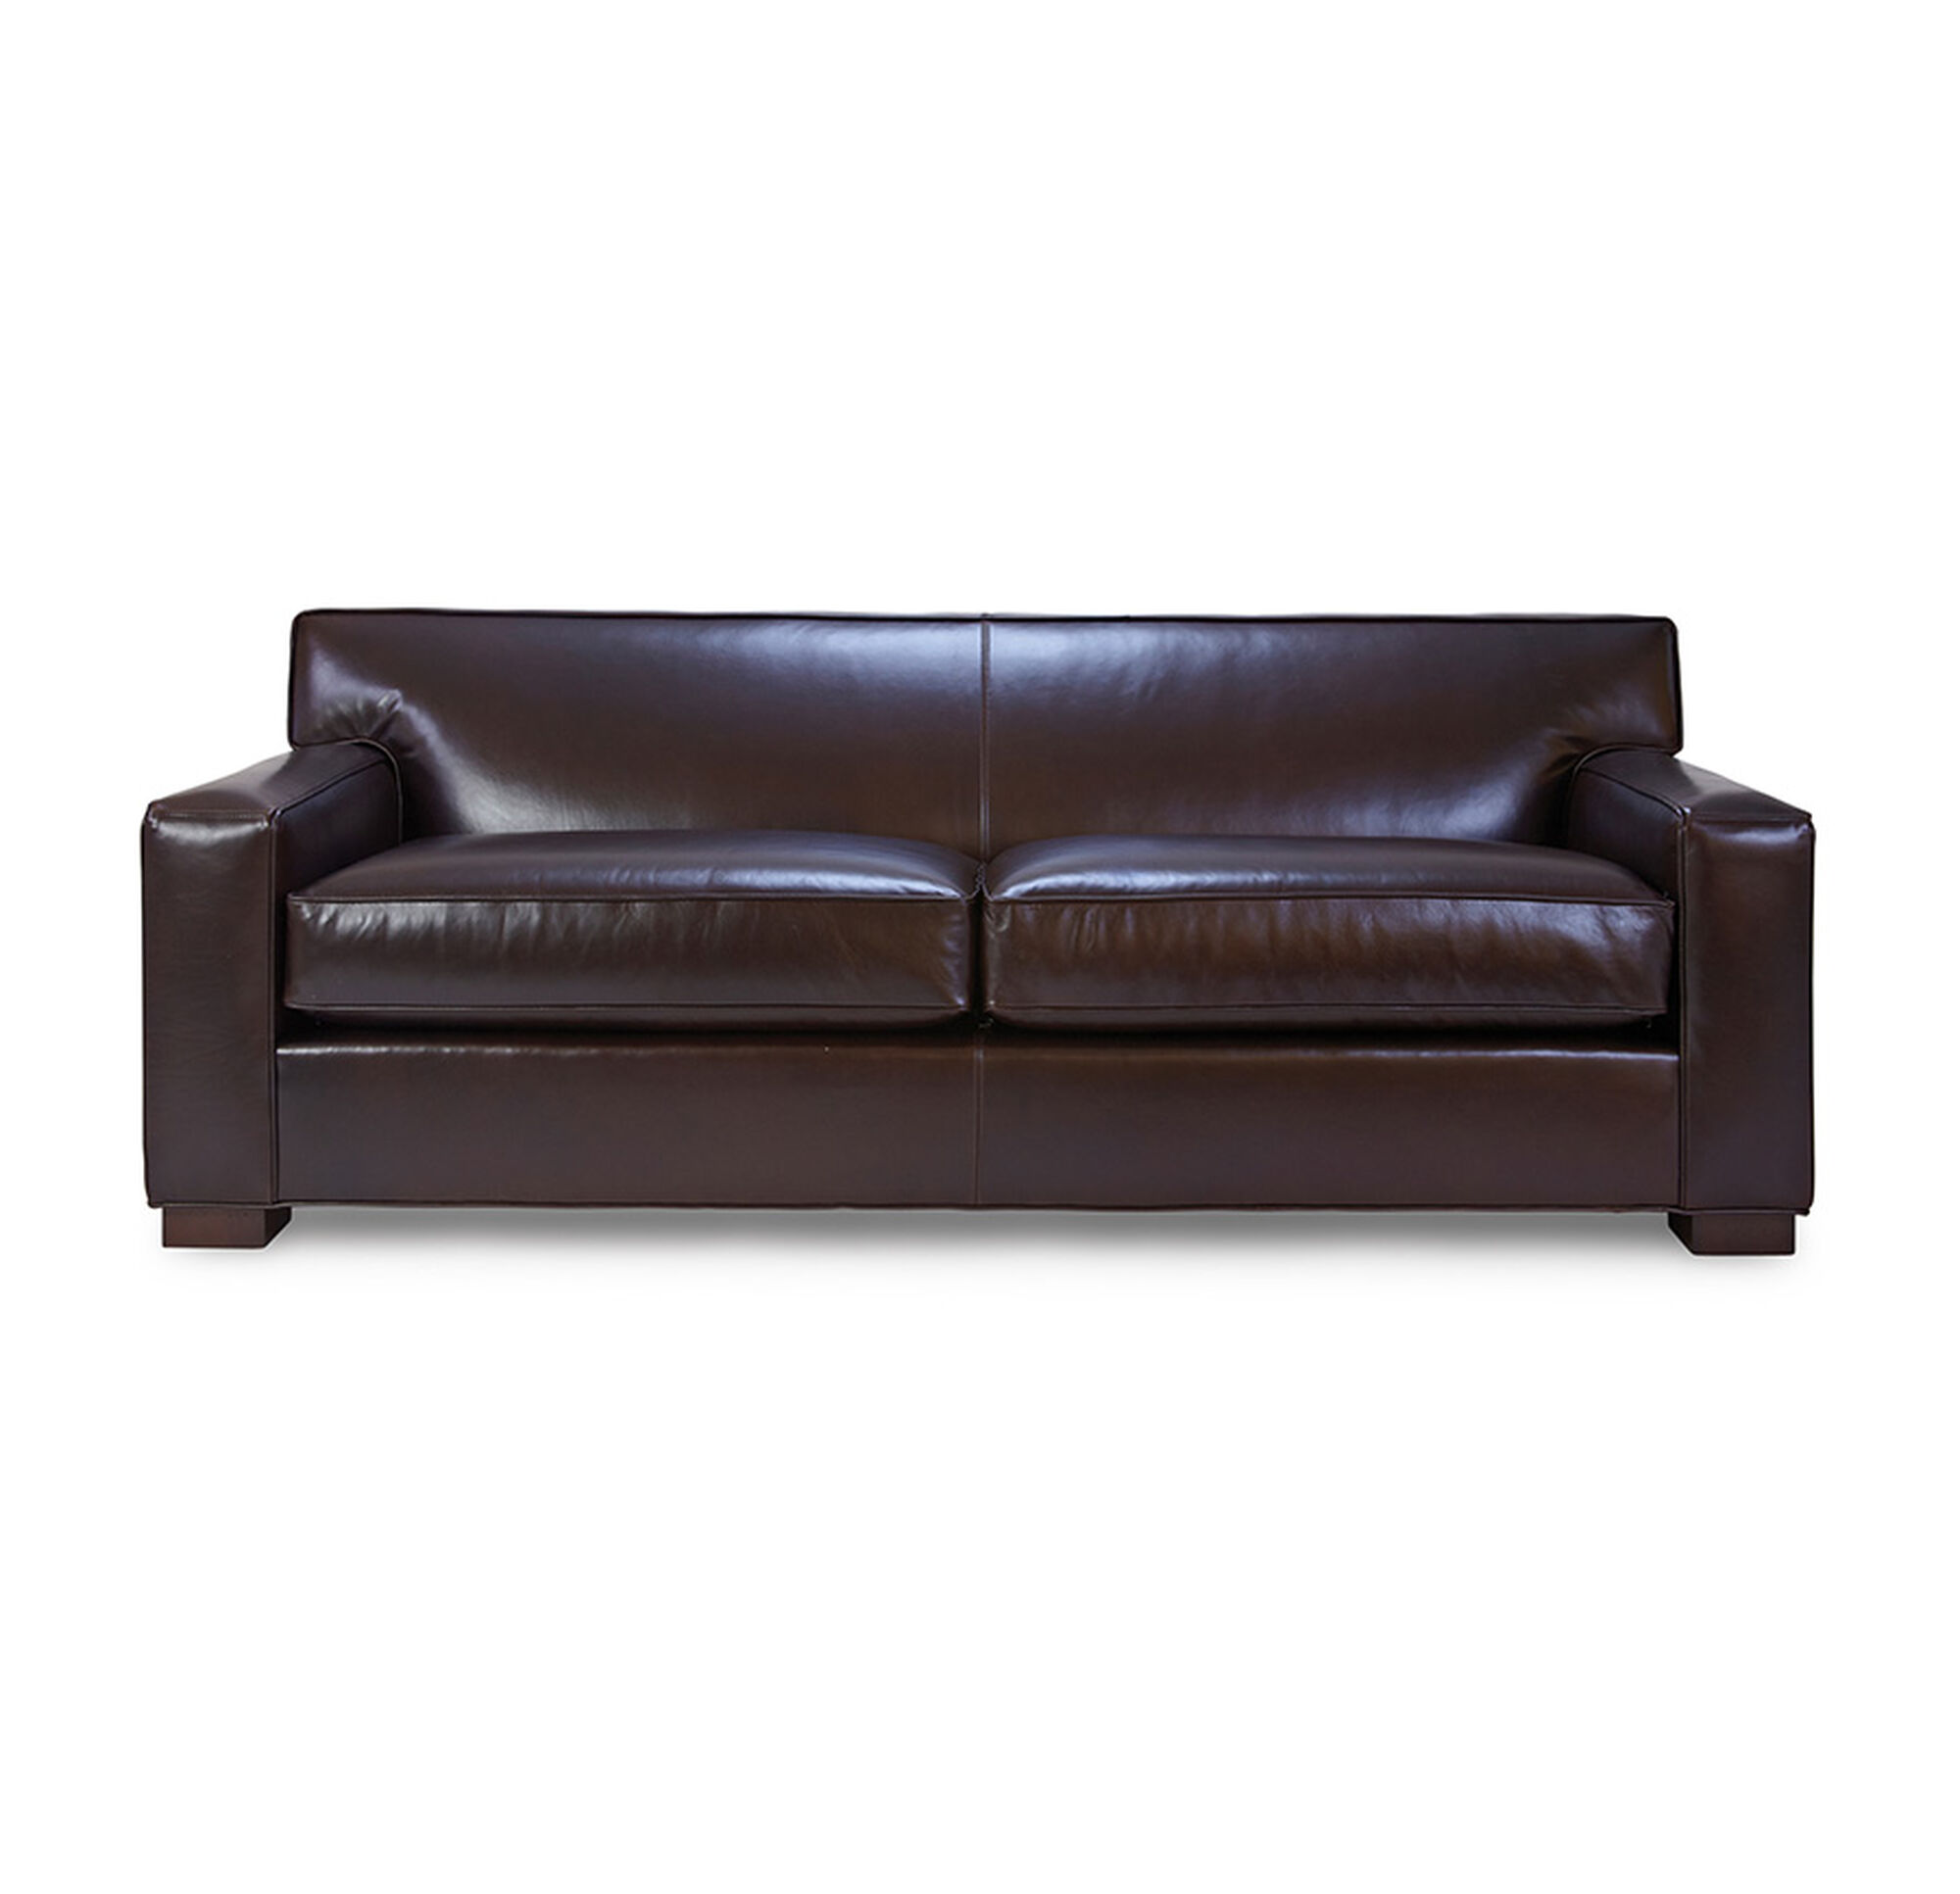 JEAN LUC LEATHER SOFA